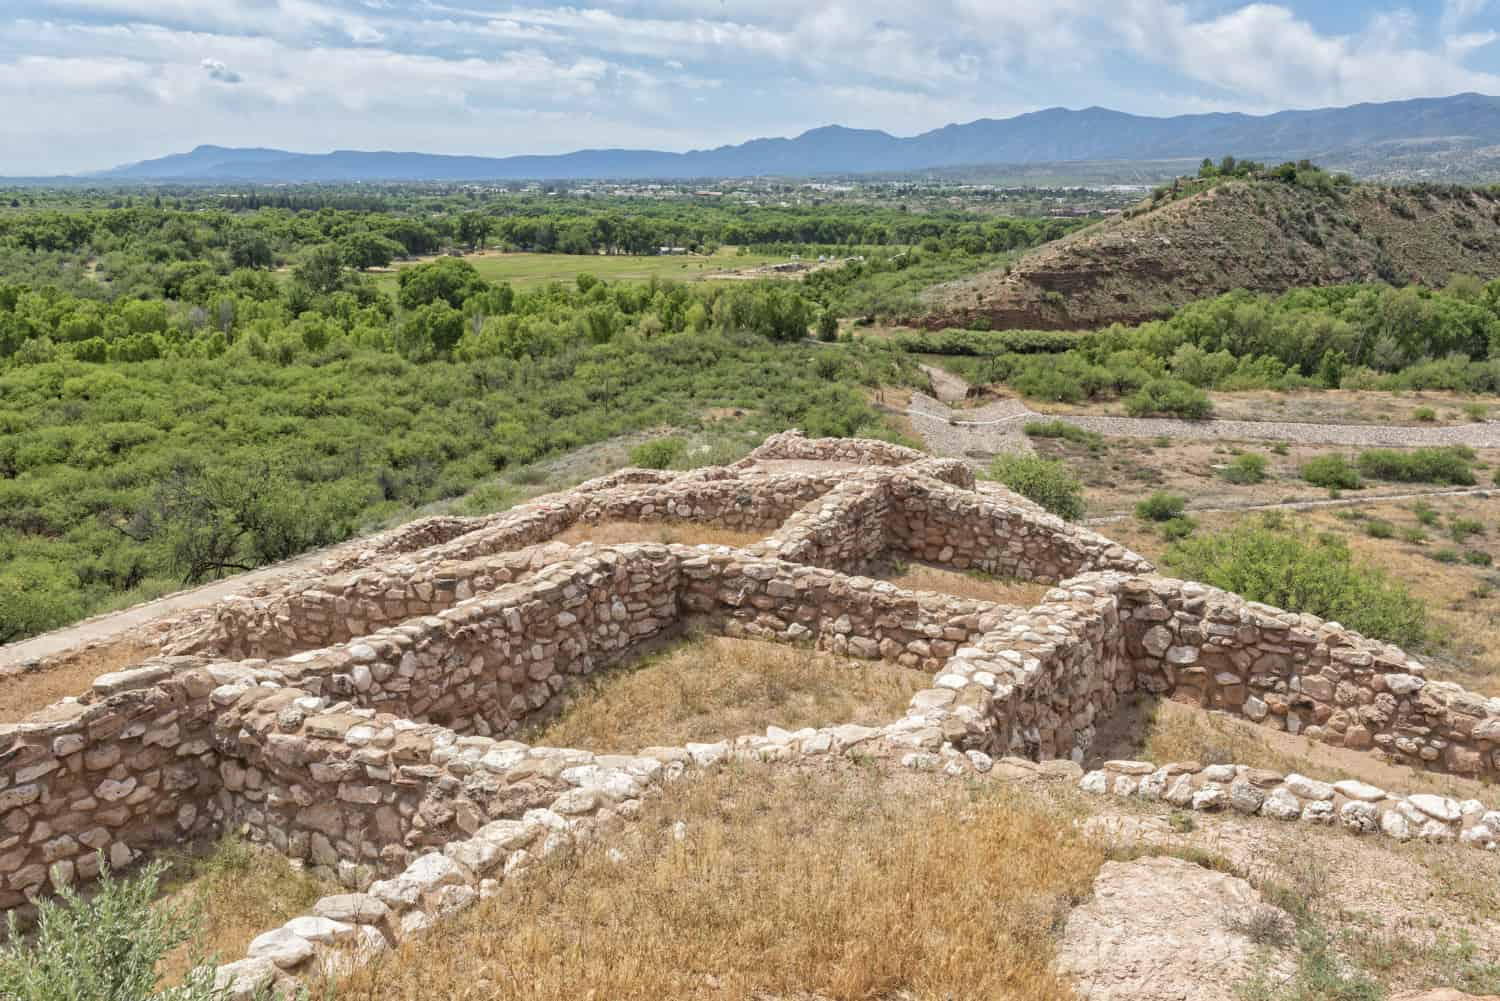 Ruins and landscape at Tuzigoot National Monument in Arizona